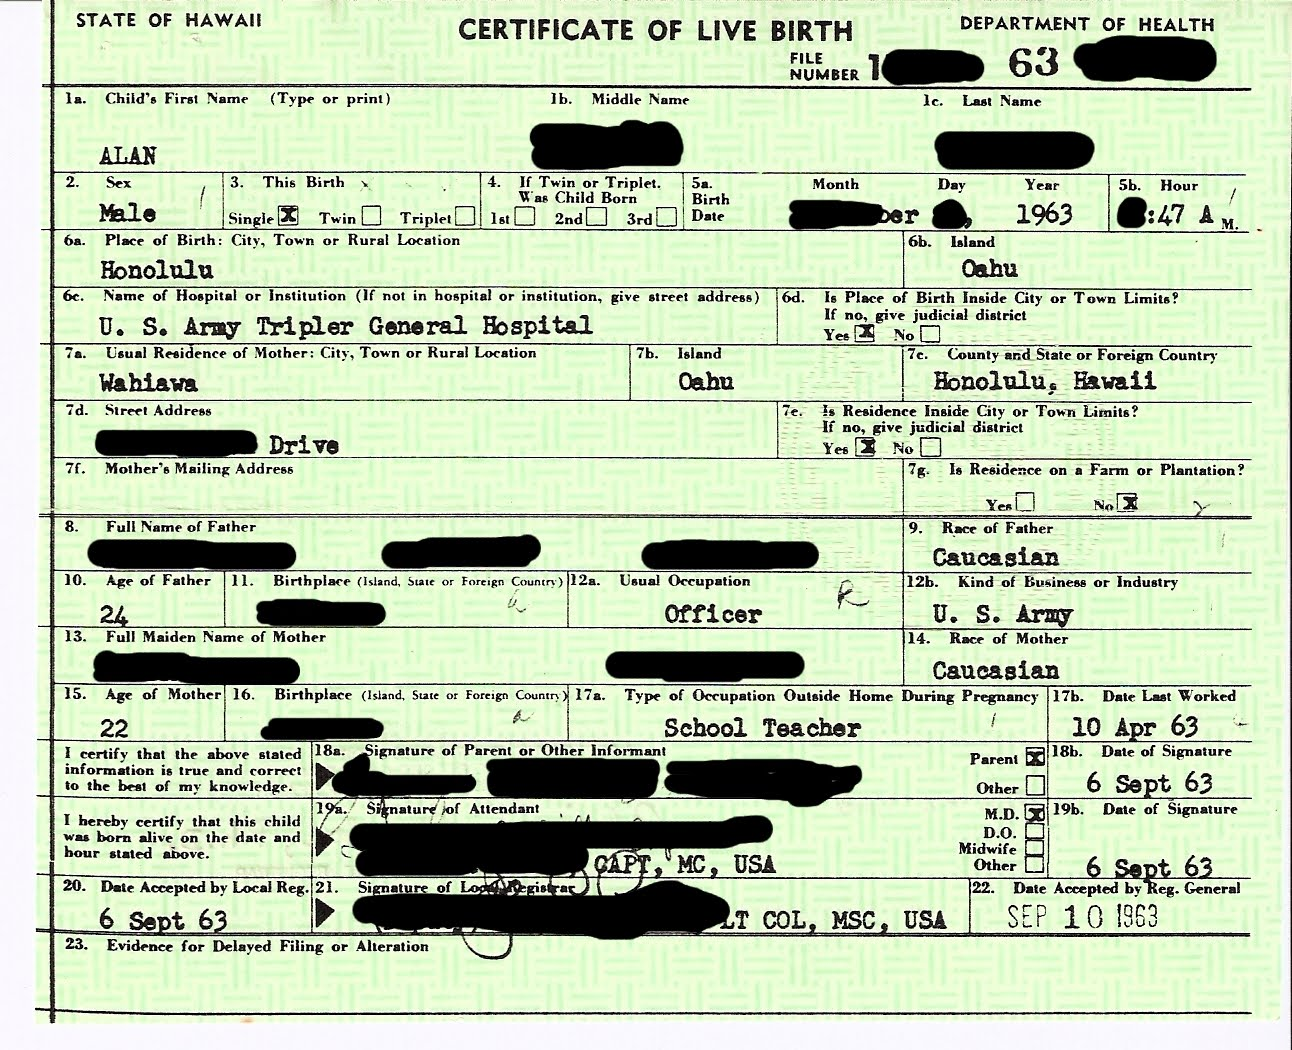 Obama And Sun Yat Sen Both Are Presidents Who Have Birth Records